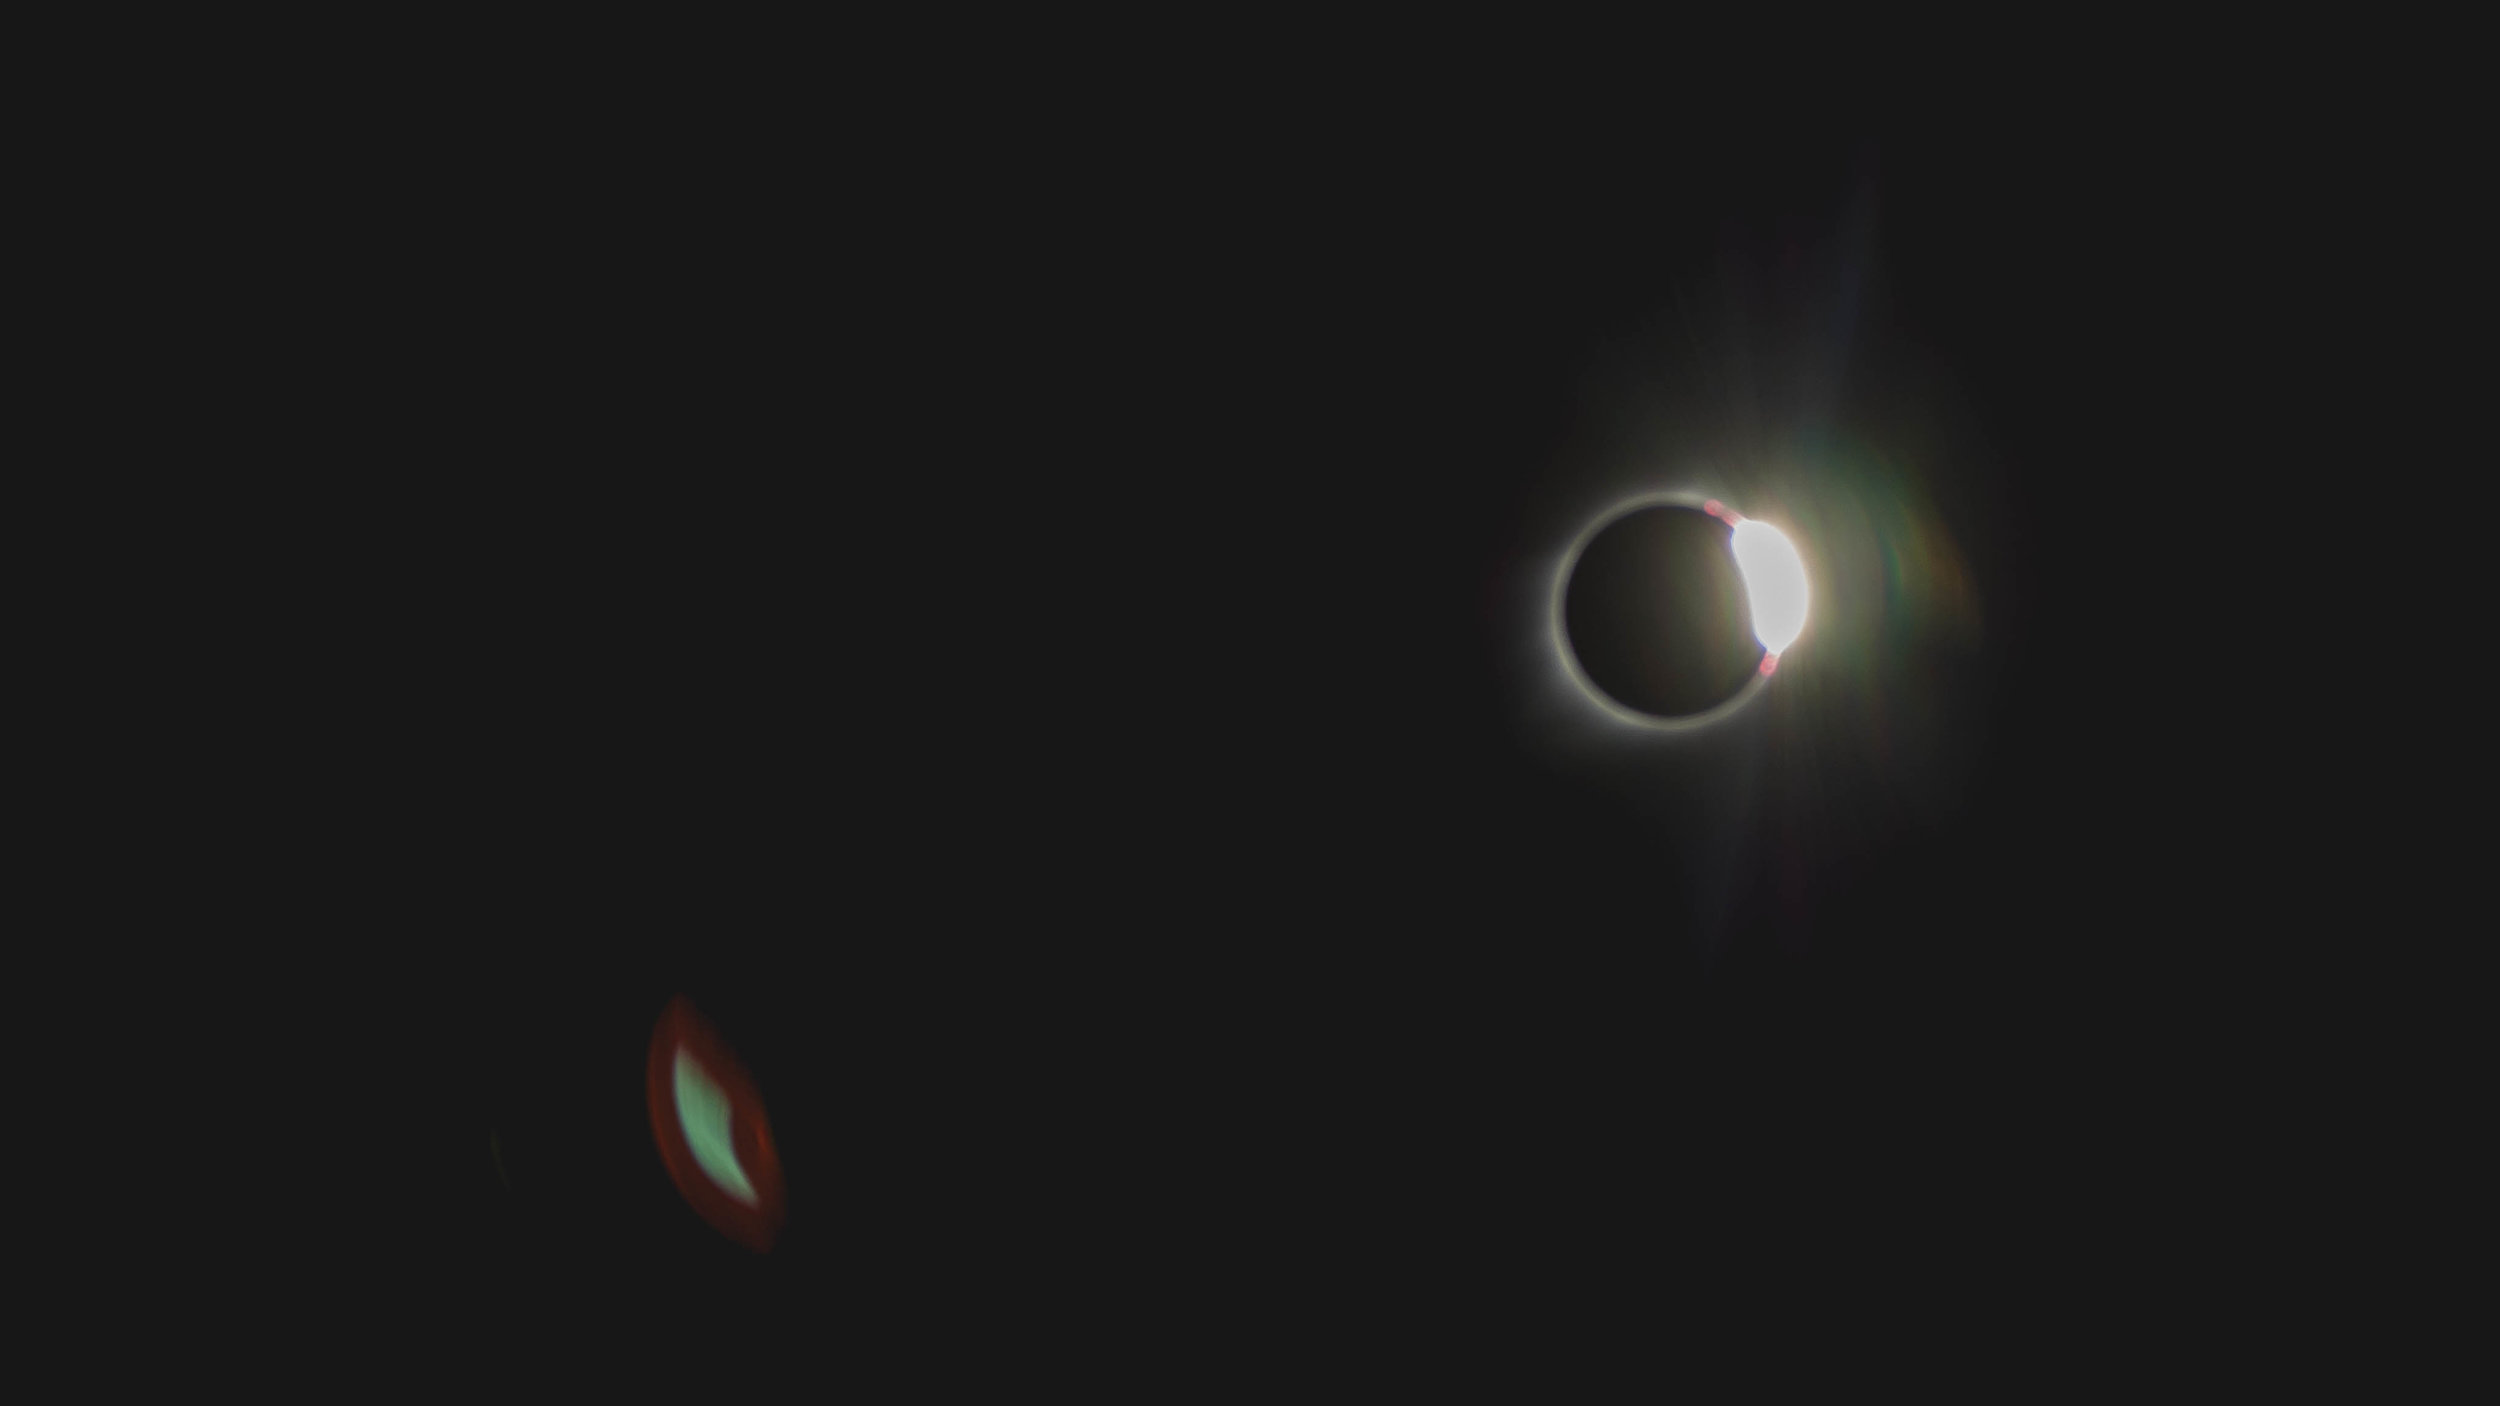 """diamond ring"" as totality ended."